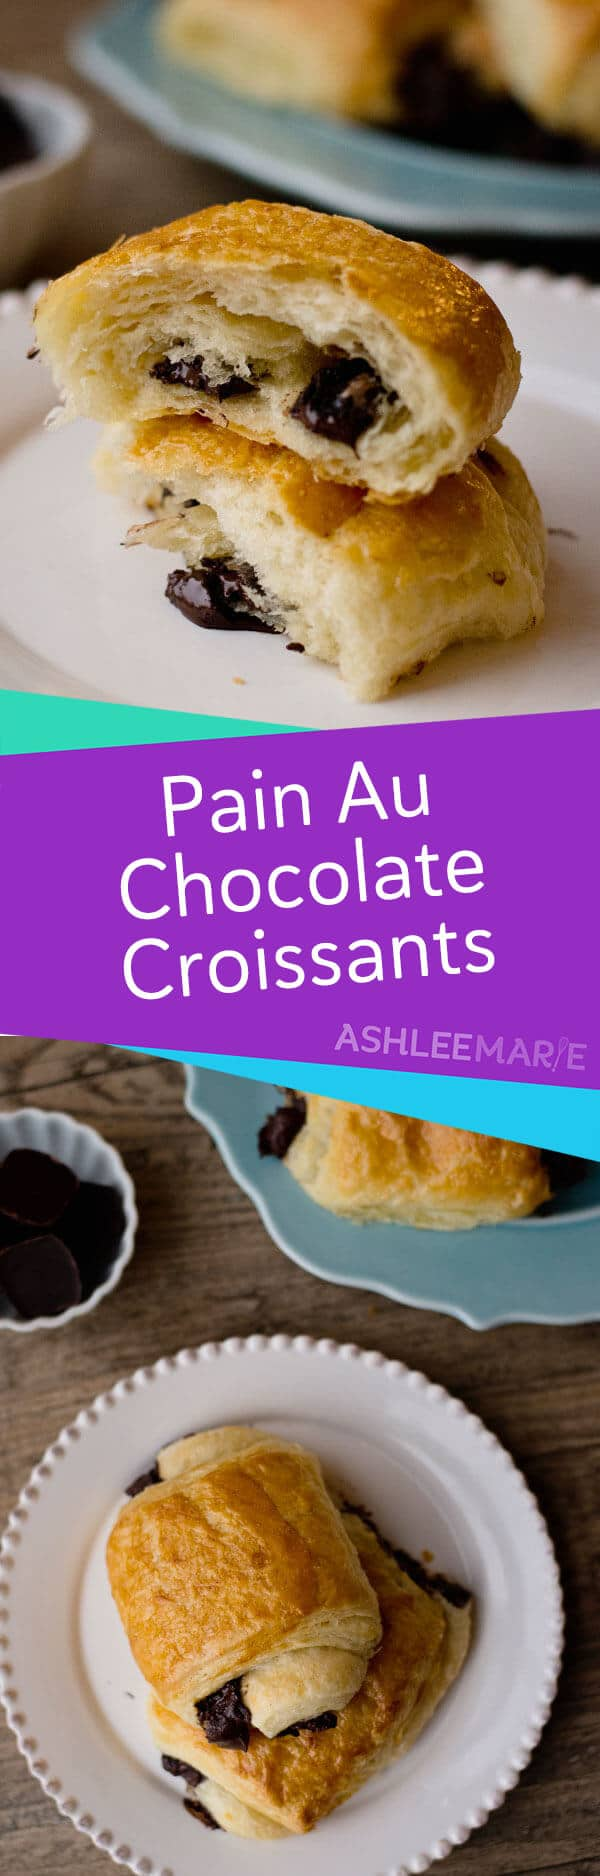 pain au chocolat - chocolate croissant recipe